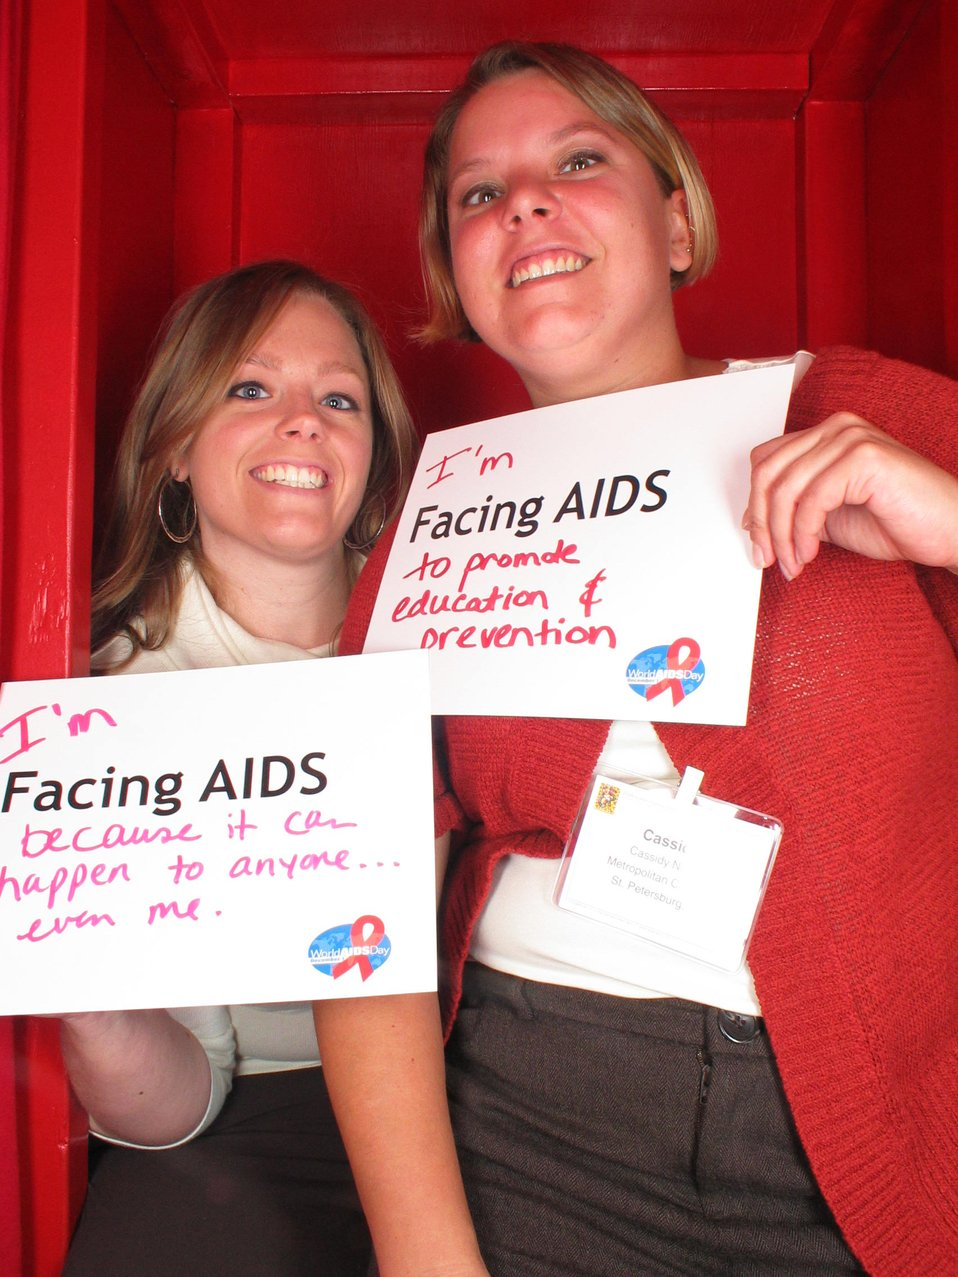 I'm Facing AIDS because it can happen to anyone...even me. I am Facing AIDS to promote education and prevention.